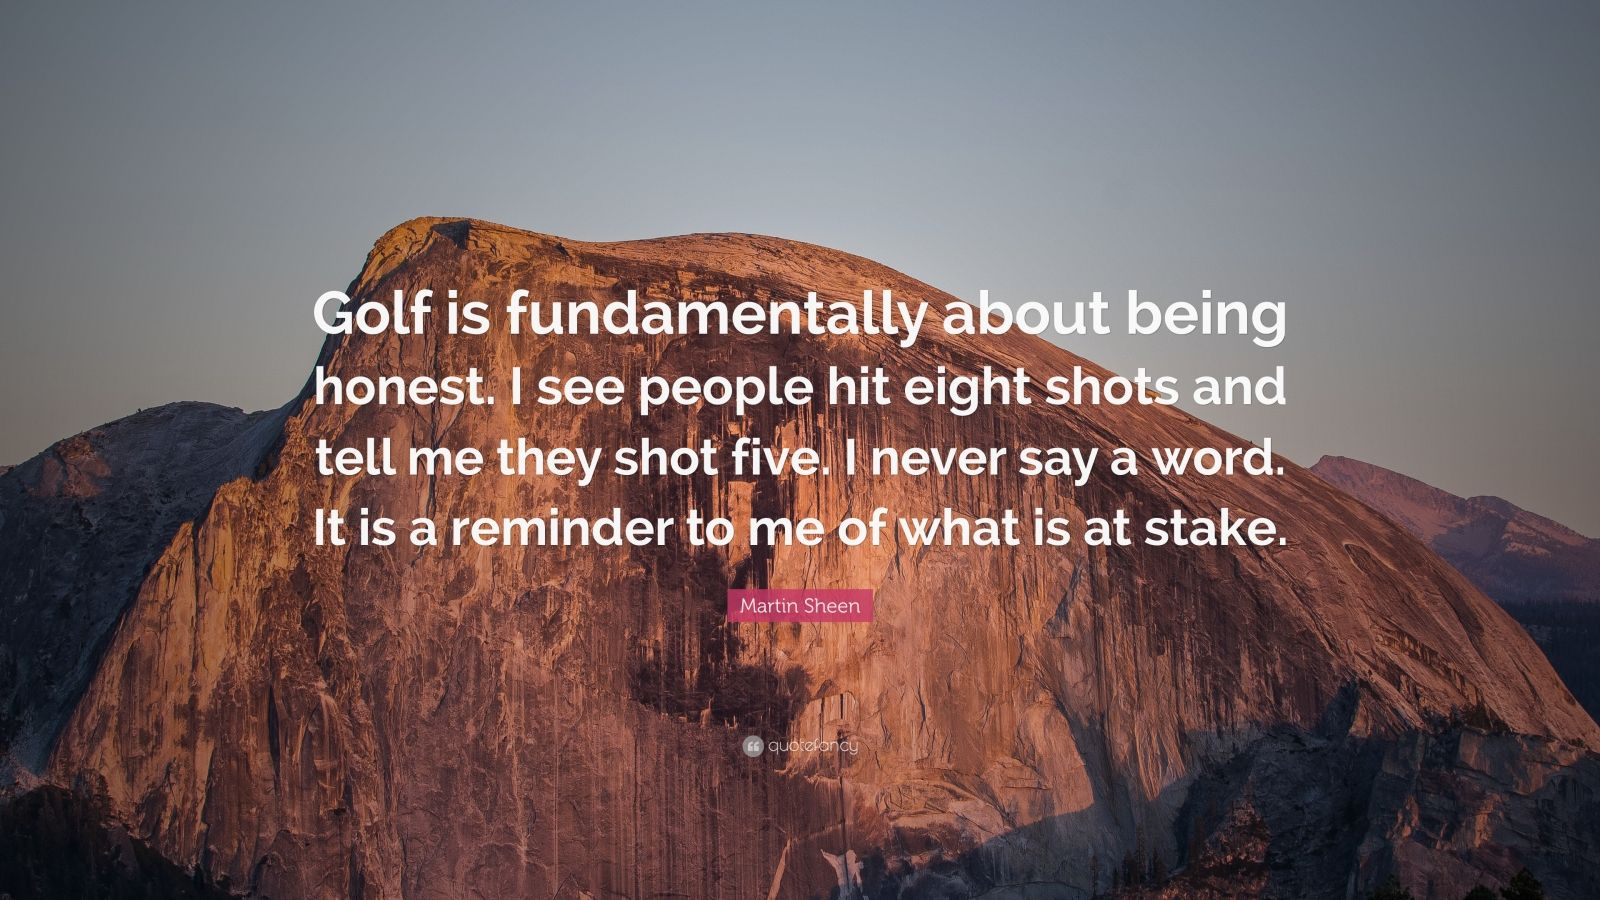 """Martin Sheen Quote: """"Golf is fundamentally about being honest. I see people hit eight shots and tell me they shot five. I never say a word. It is a reminder to me of what is at stake."""""""